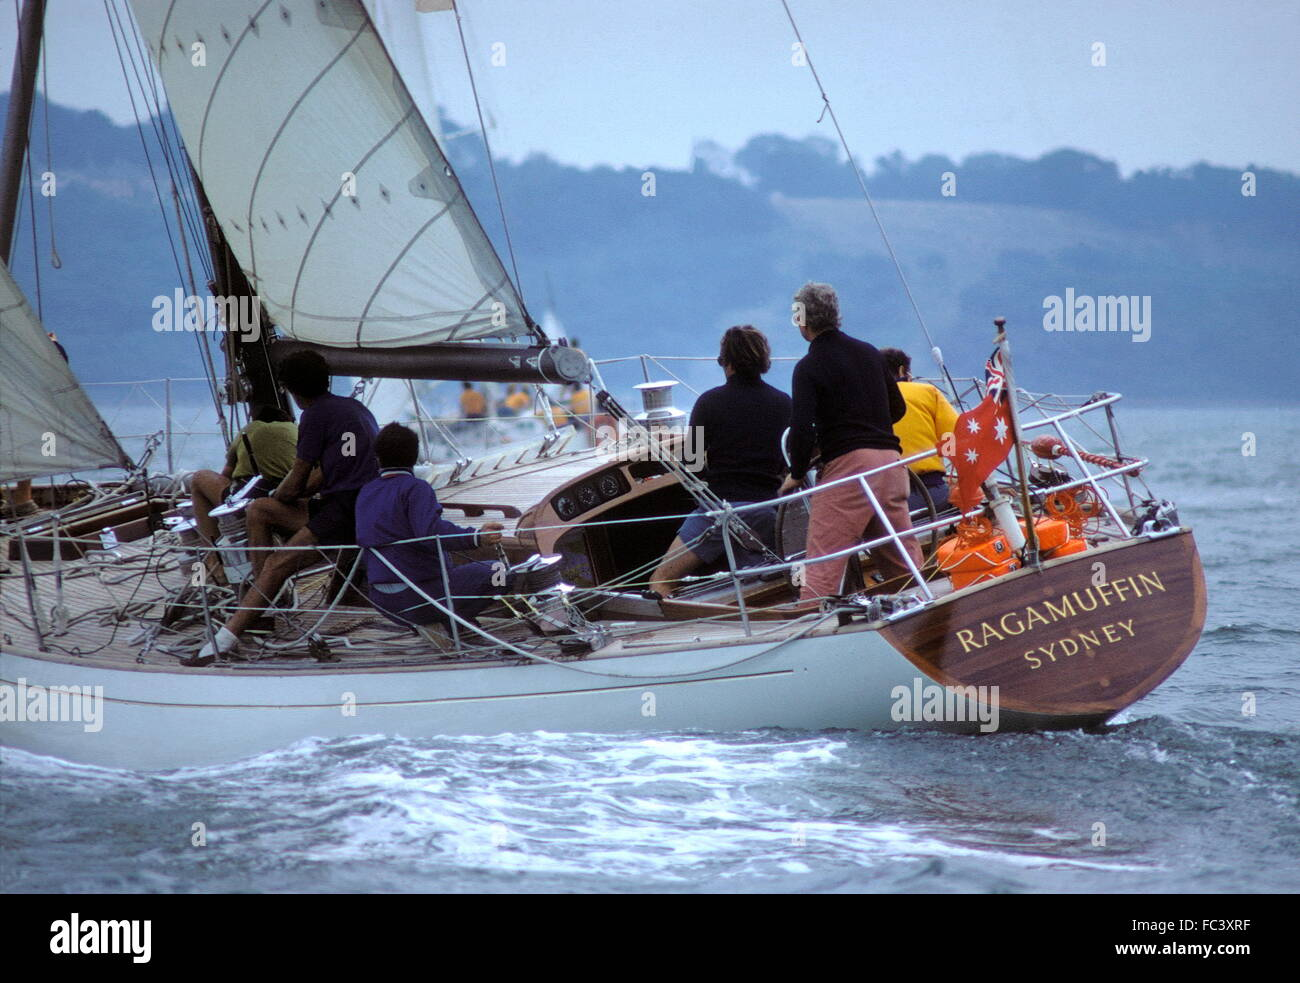 AJAX NEWS PHOTOS.1973. SOLENT, ENGLAND. - ADMIRAL'S CUP CHAMPIONSHIP - AUSTRALIAN TEAM YACHT RAGAMUFFIN SKIPPERED - Stock Image